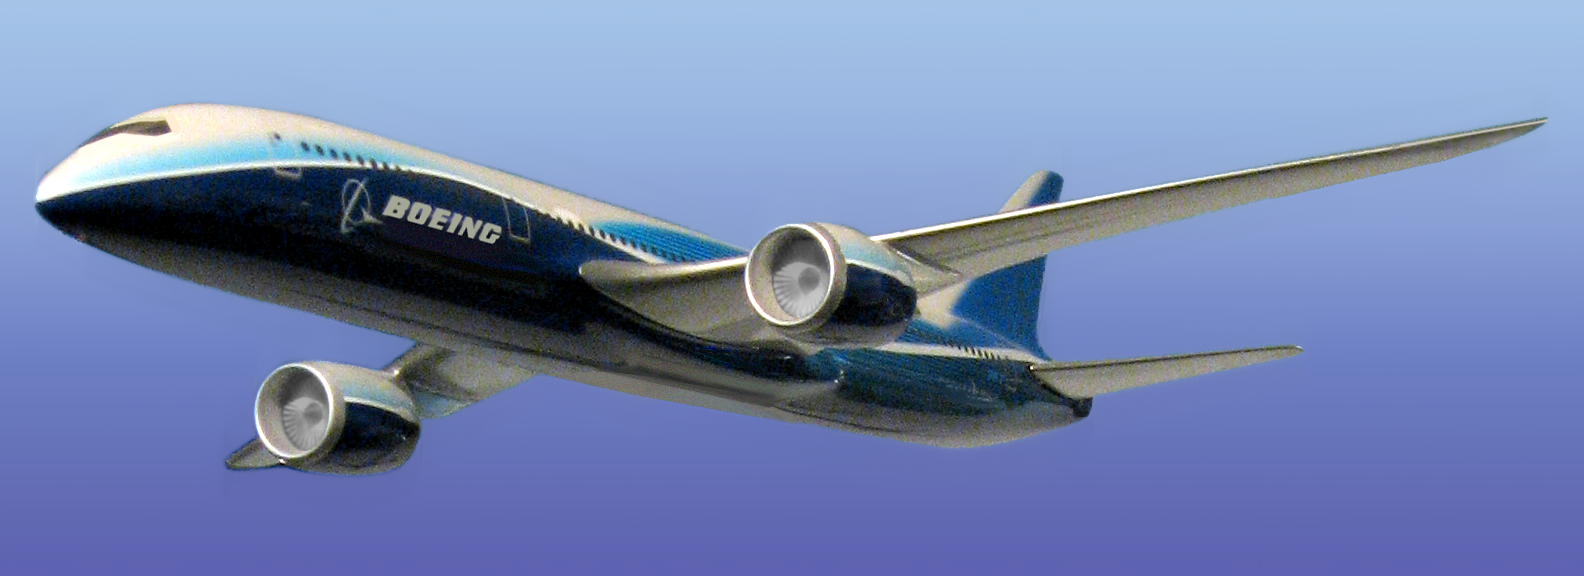 boeing 7e7 case summary Free essays on wacc for boeing 7e7 case study for students use our papers to help you with yours 1 - 30.